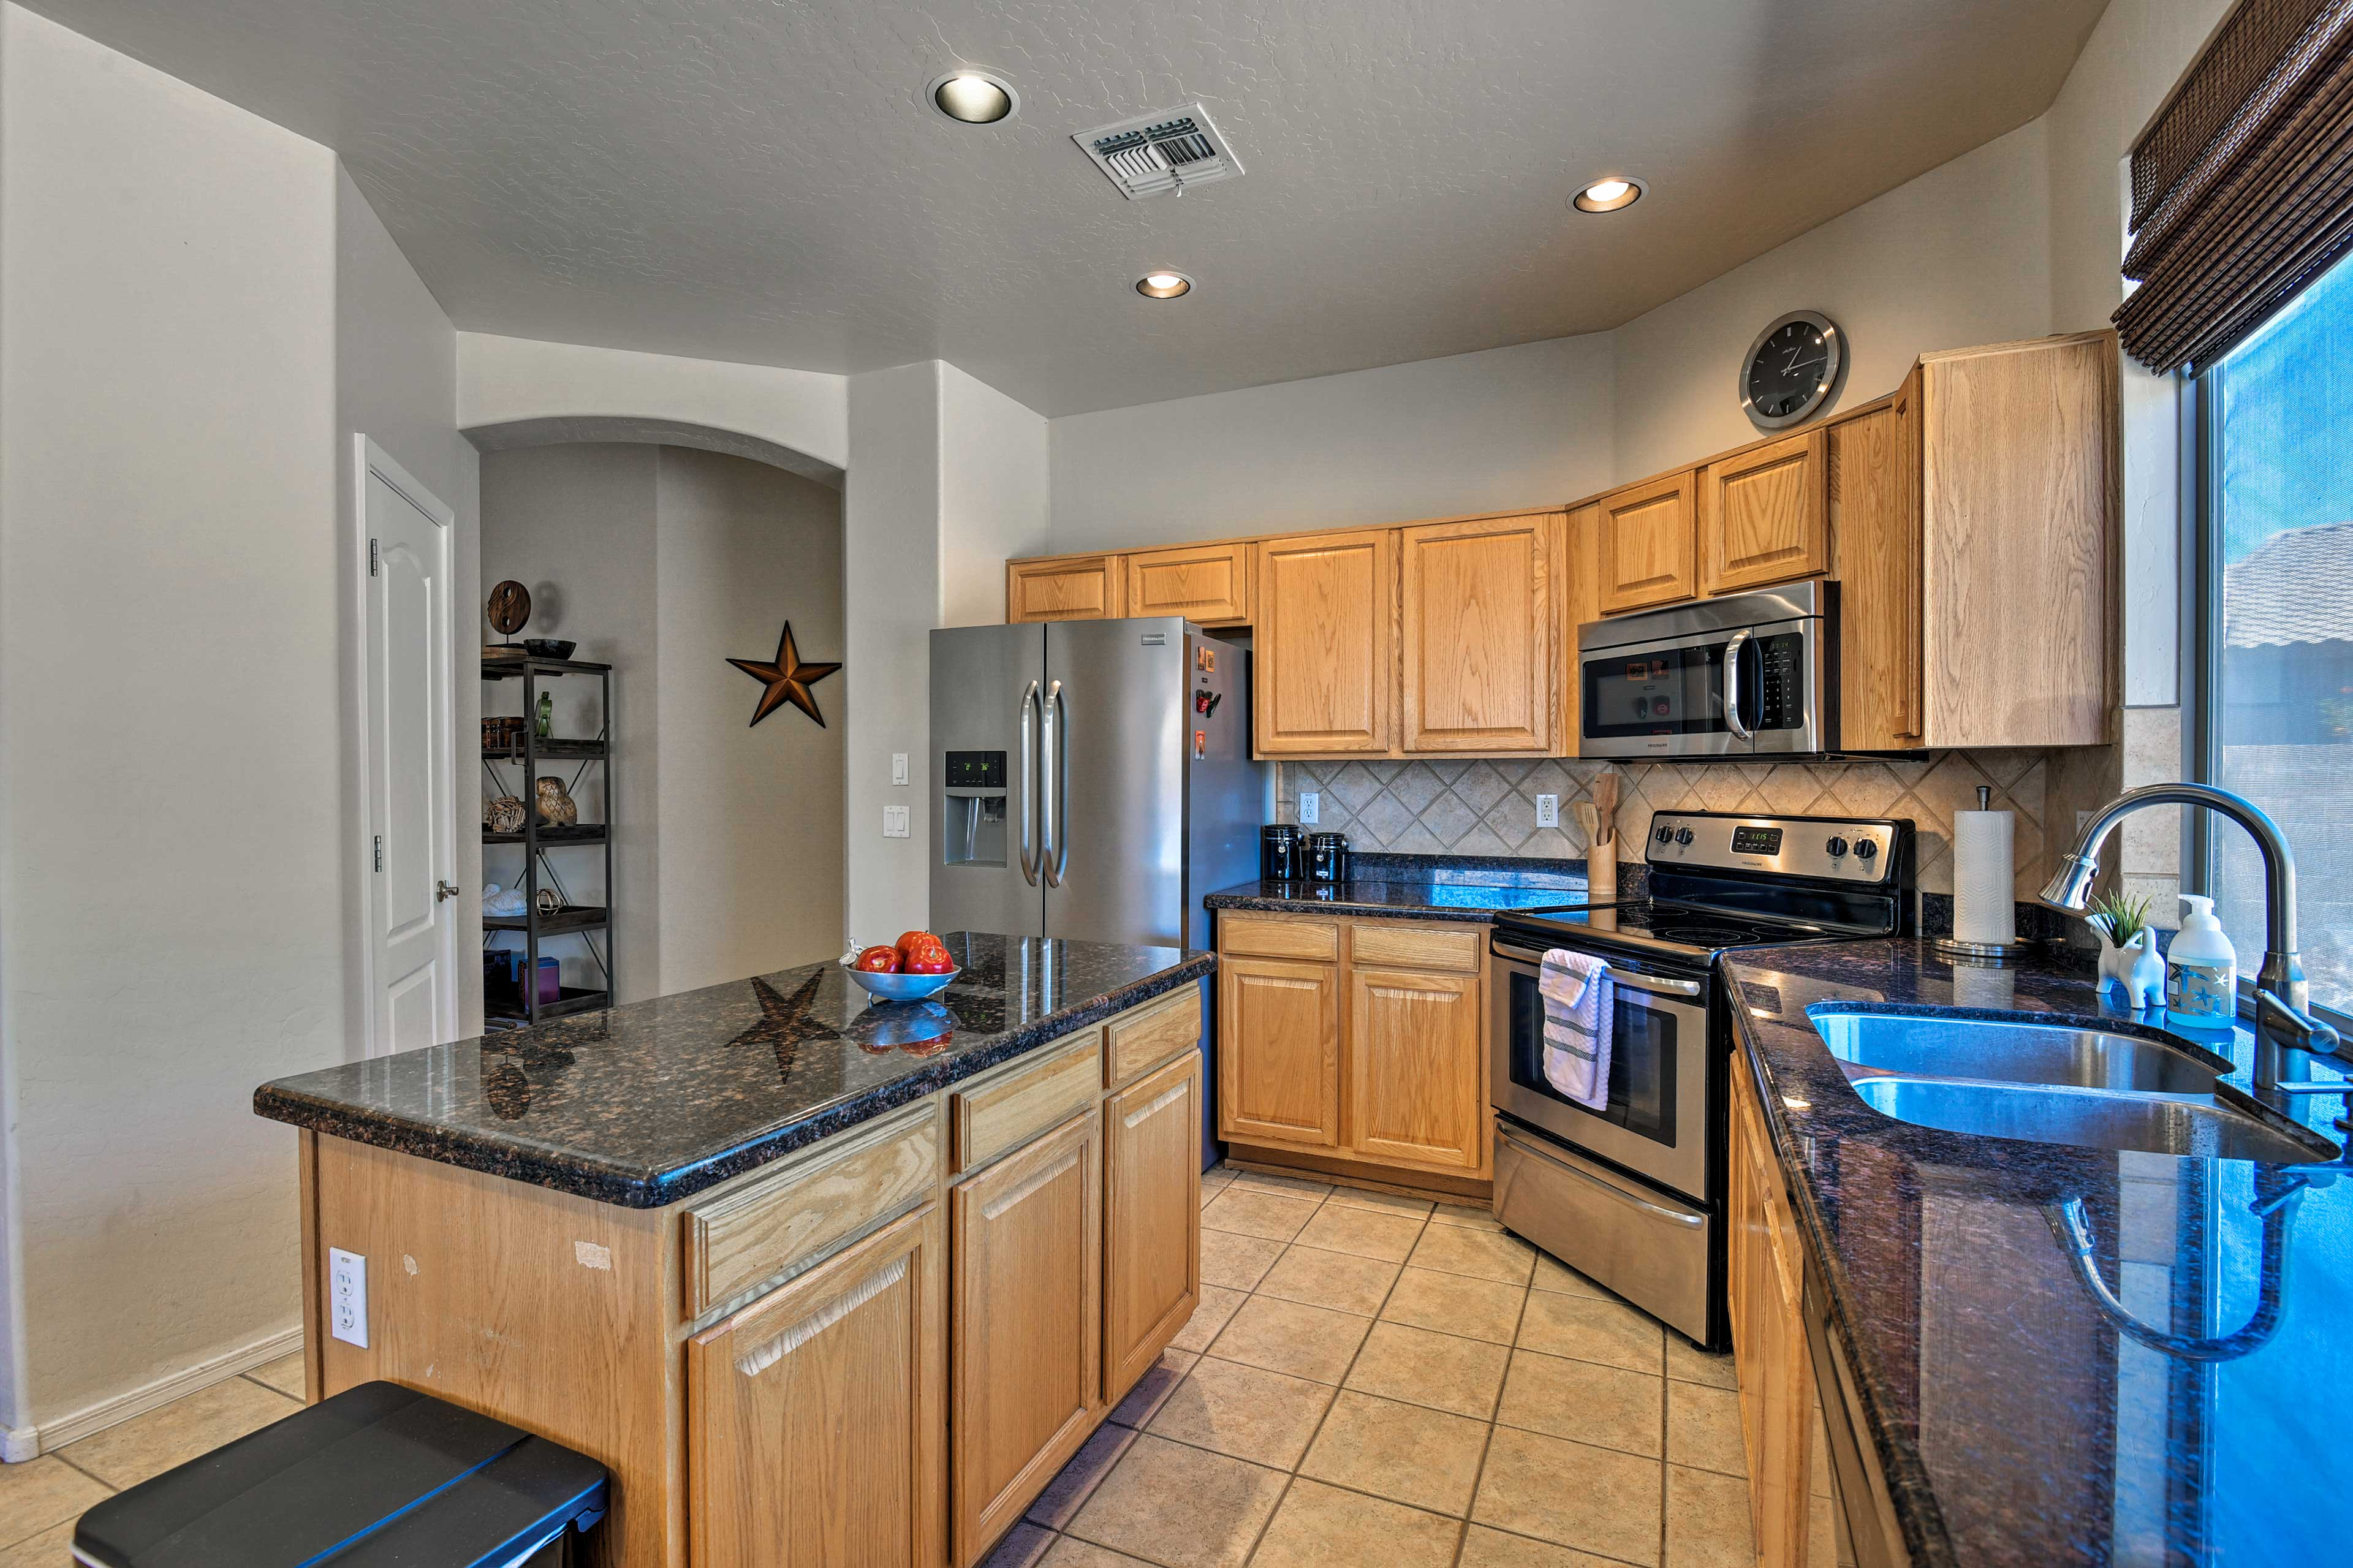 The kitchen comes fully equipped for all your culinary needs.